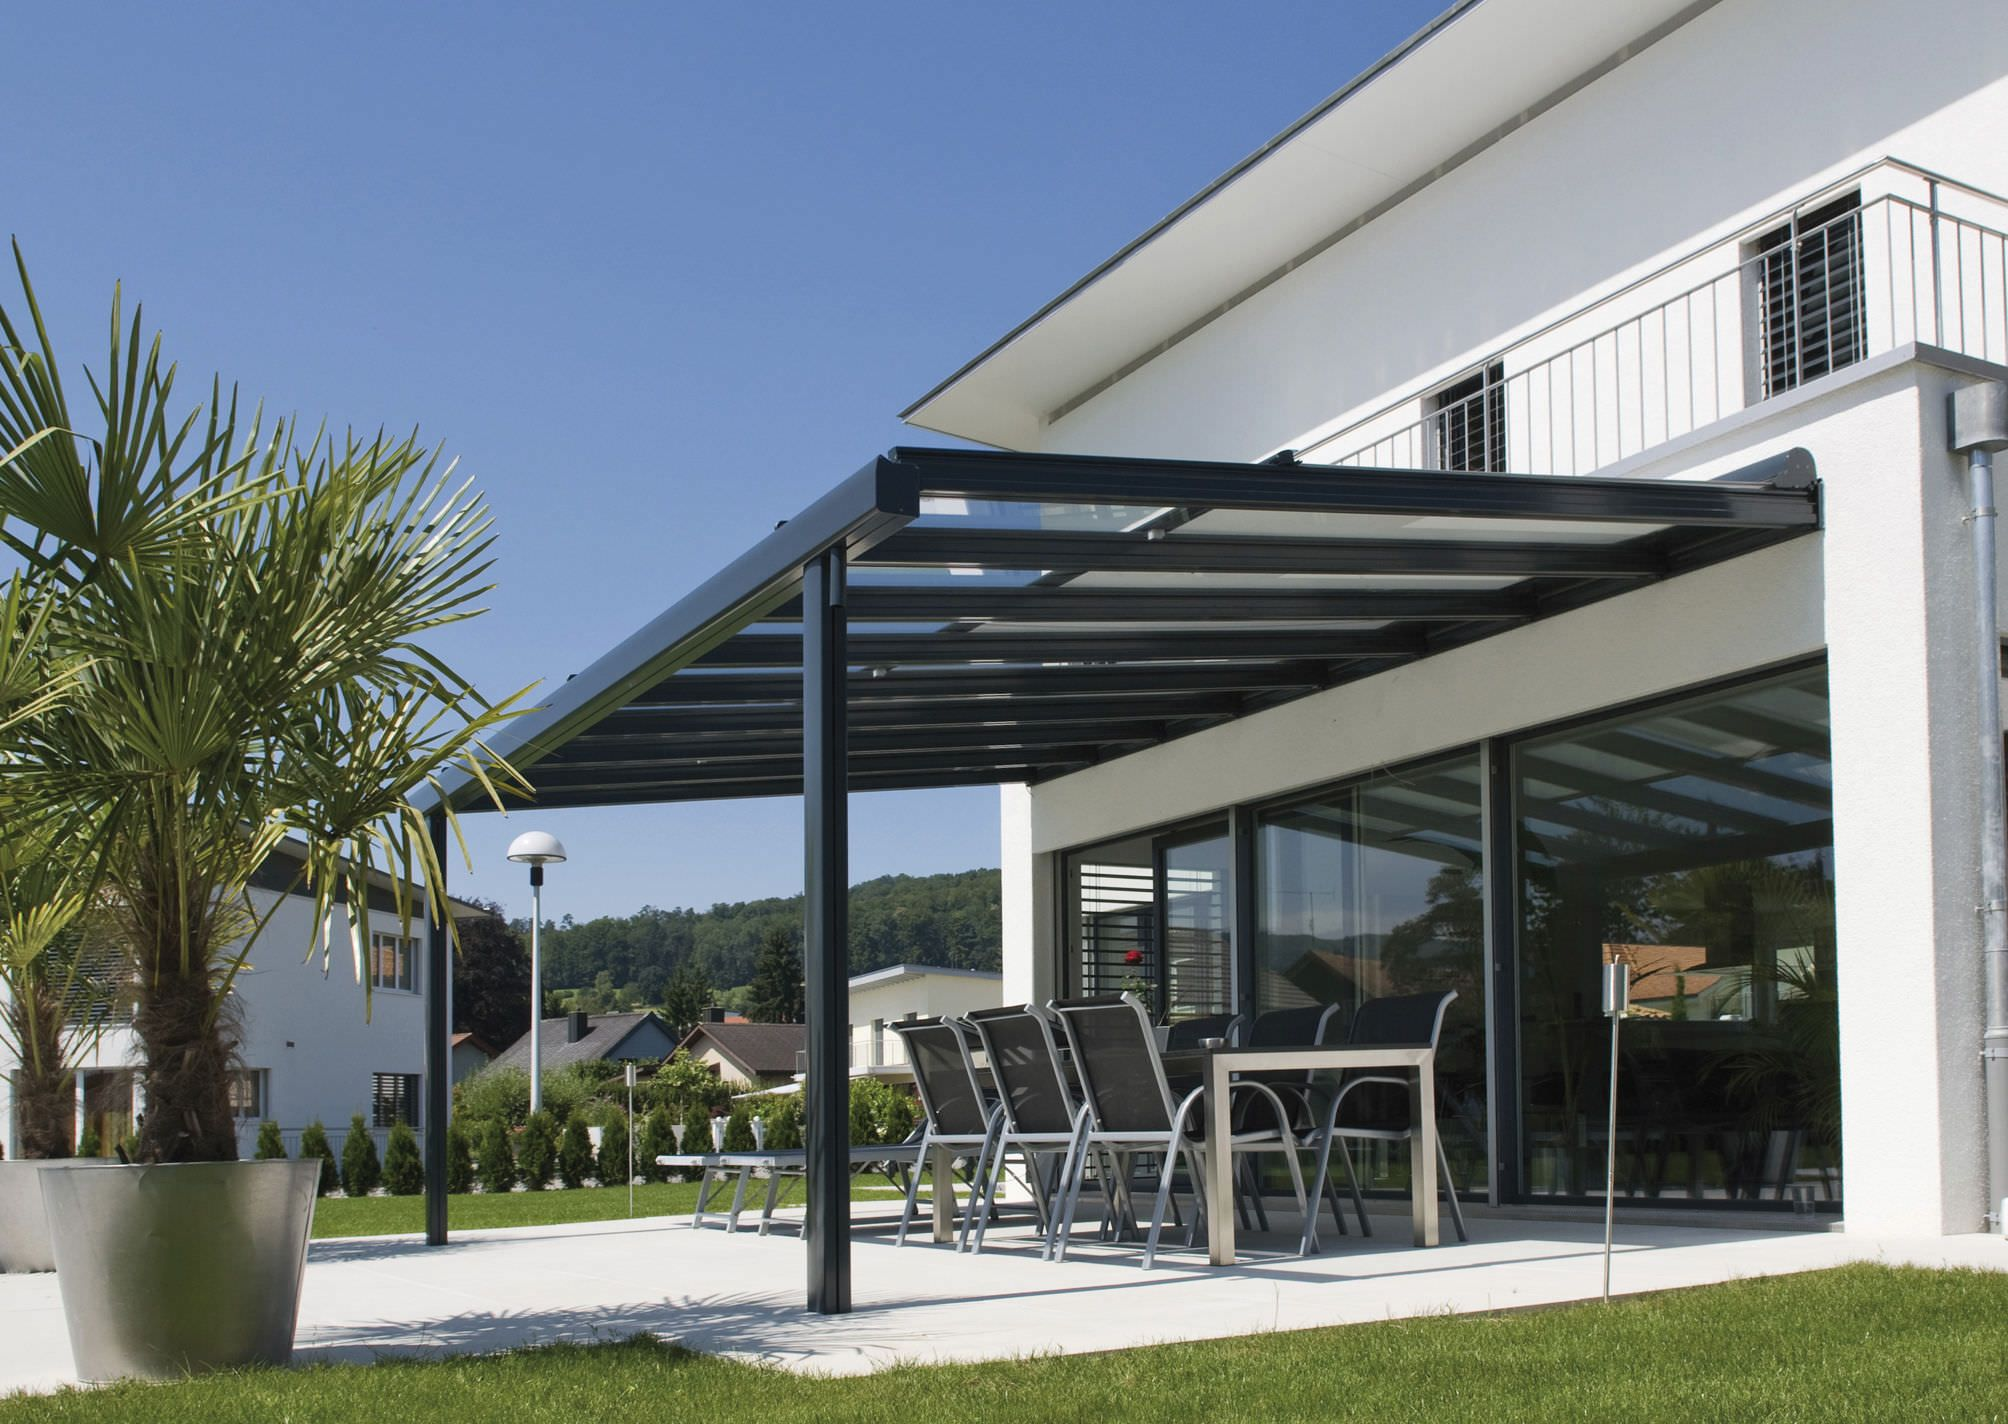 glass awning - Google Search & glass awning - Google Search | Dream House | Pinterest | Glass ...